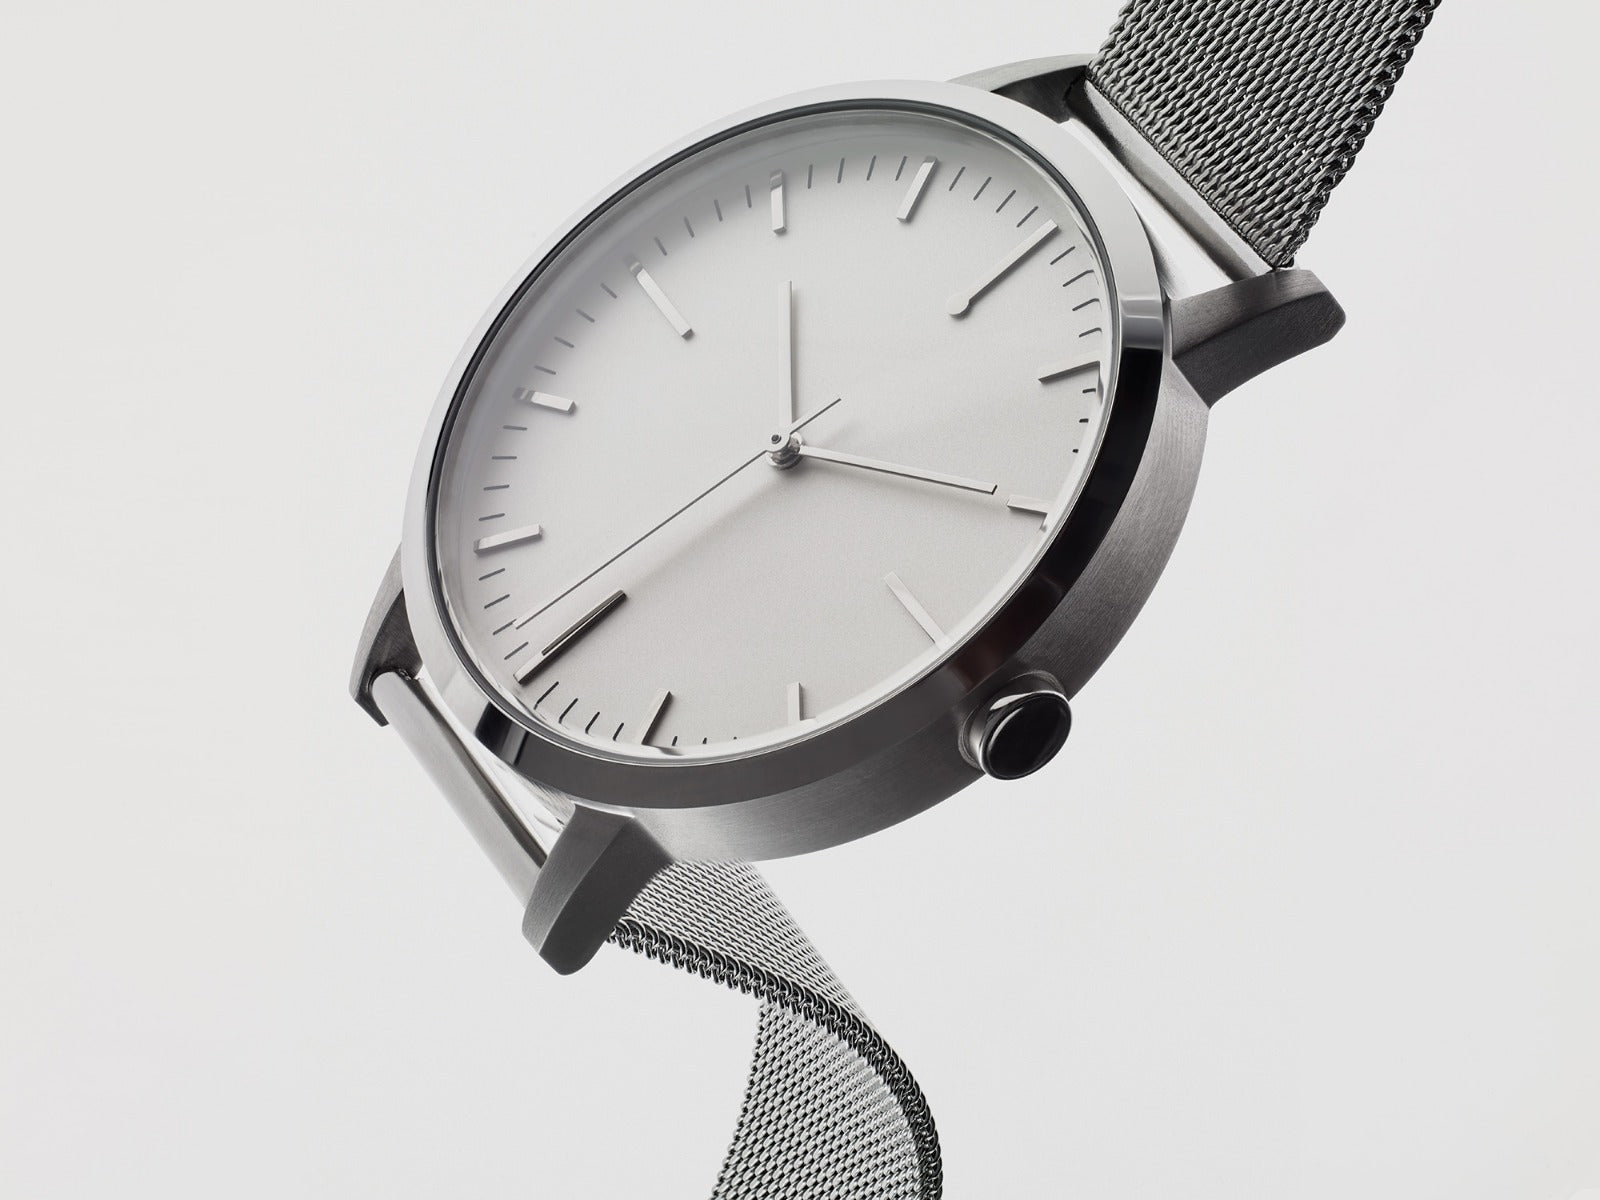 Silver Mesh Watch - Freedom To Exist - Ben Swanson - Unbranded Minimal No Logo